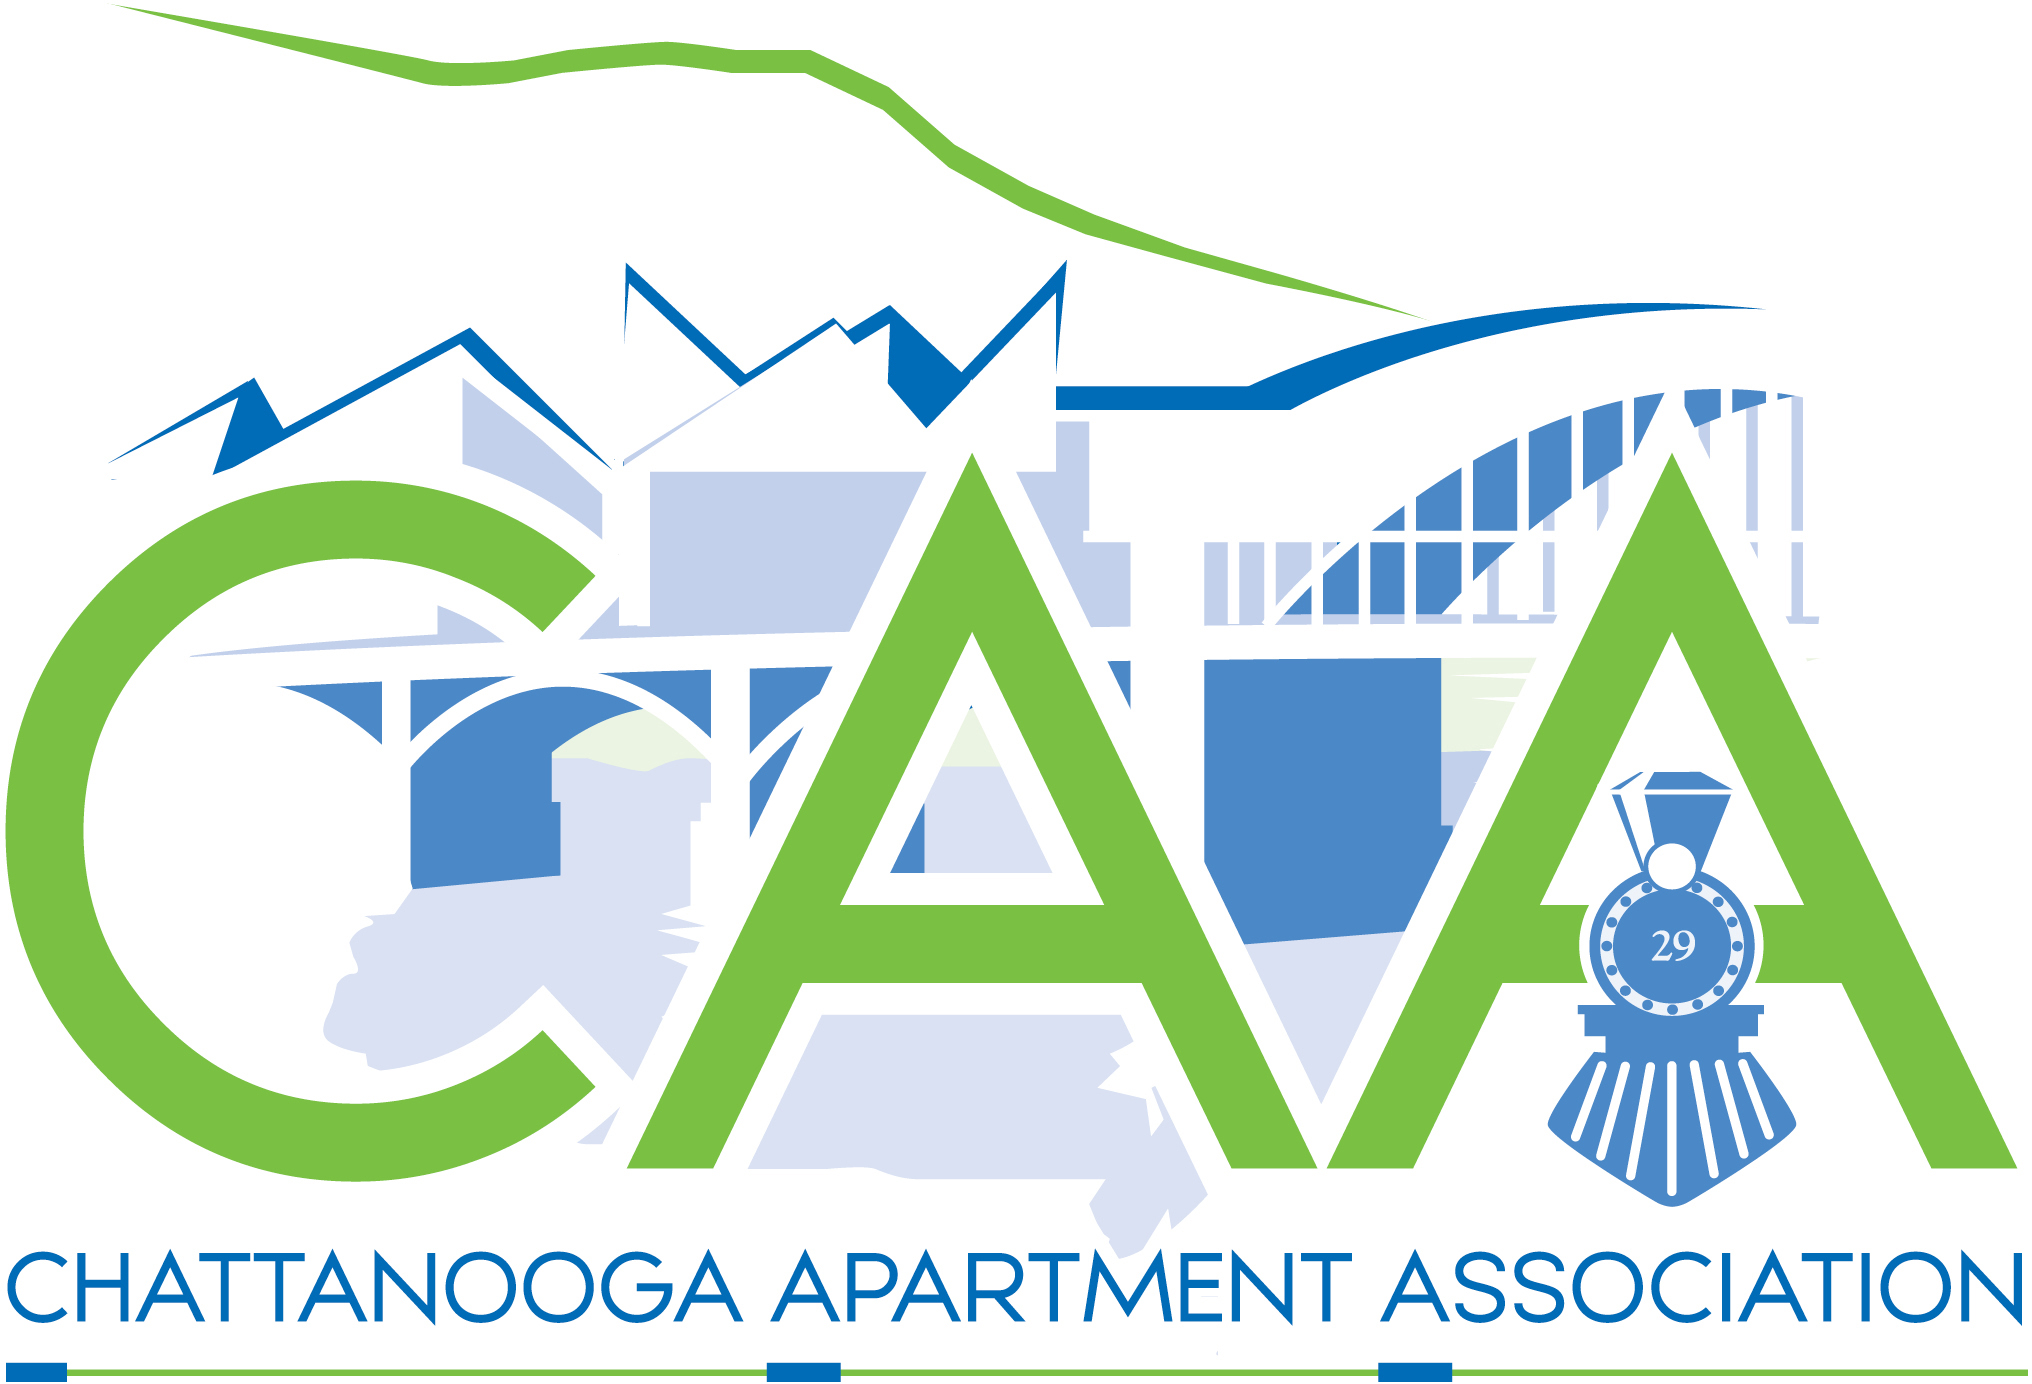 Chattanooga Apartment Association | Bringing Excellence to Chattanooga